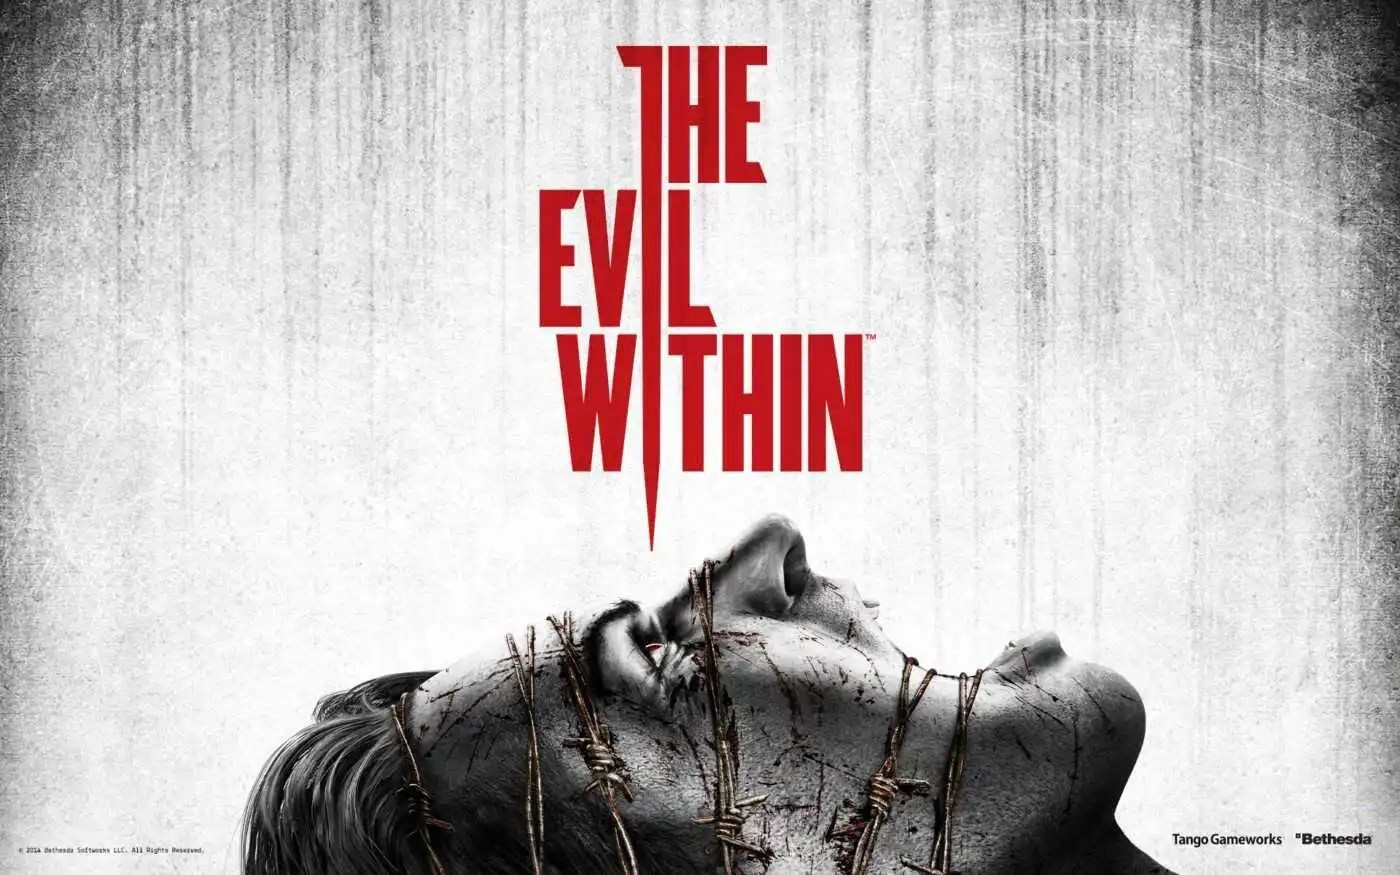 Annunciato The Evil Within 2